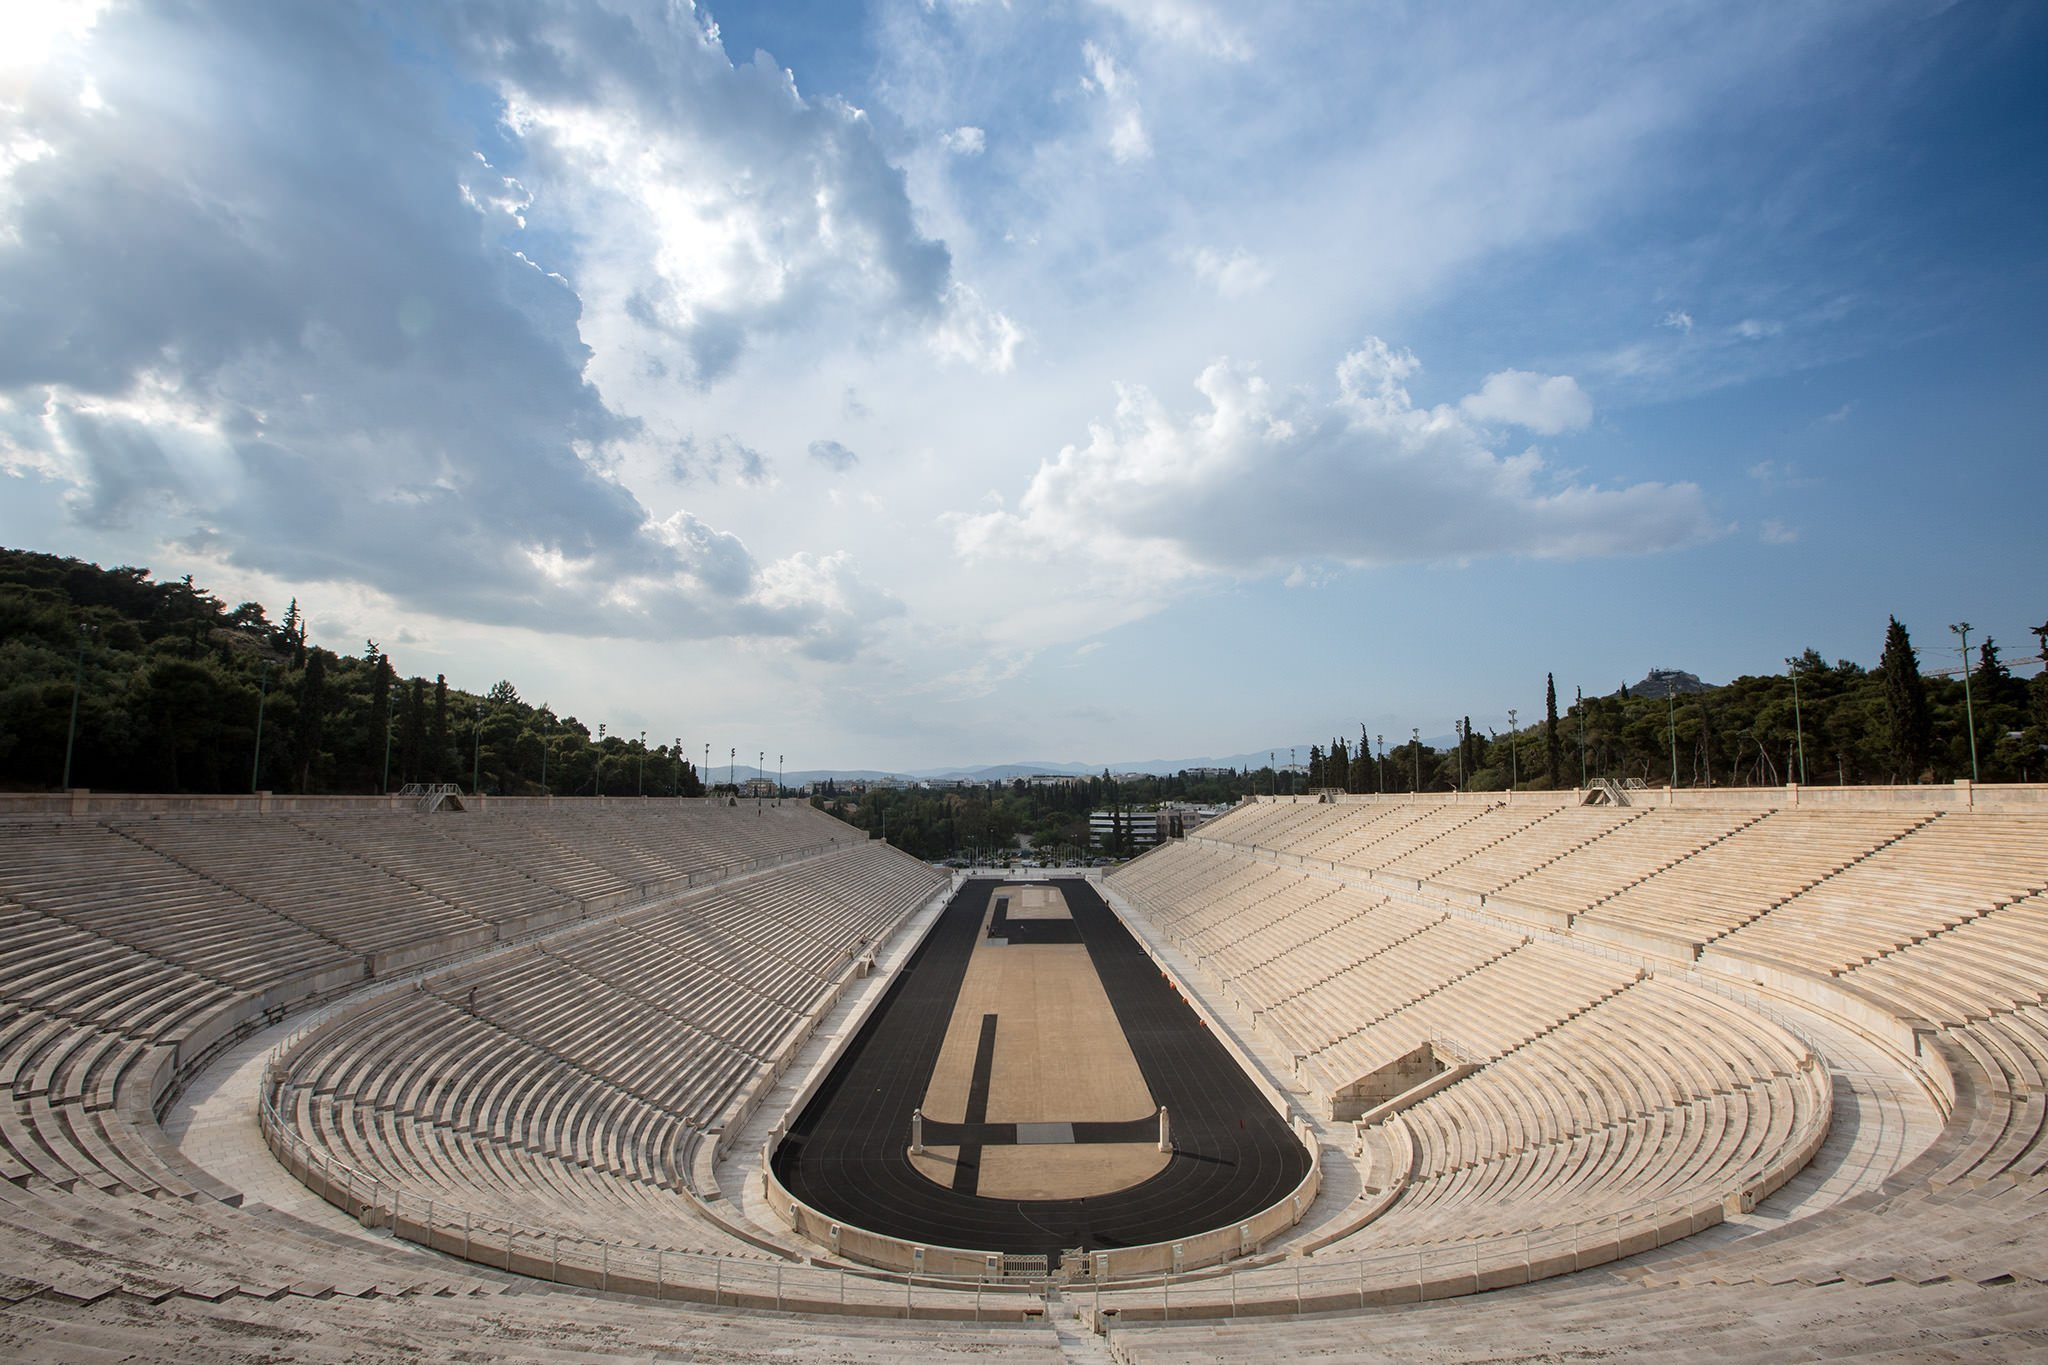 Athens tours, visit the Panathinaikon stadium for a photo tour